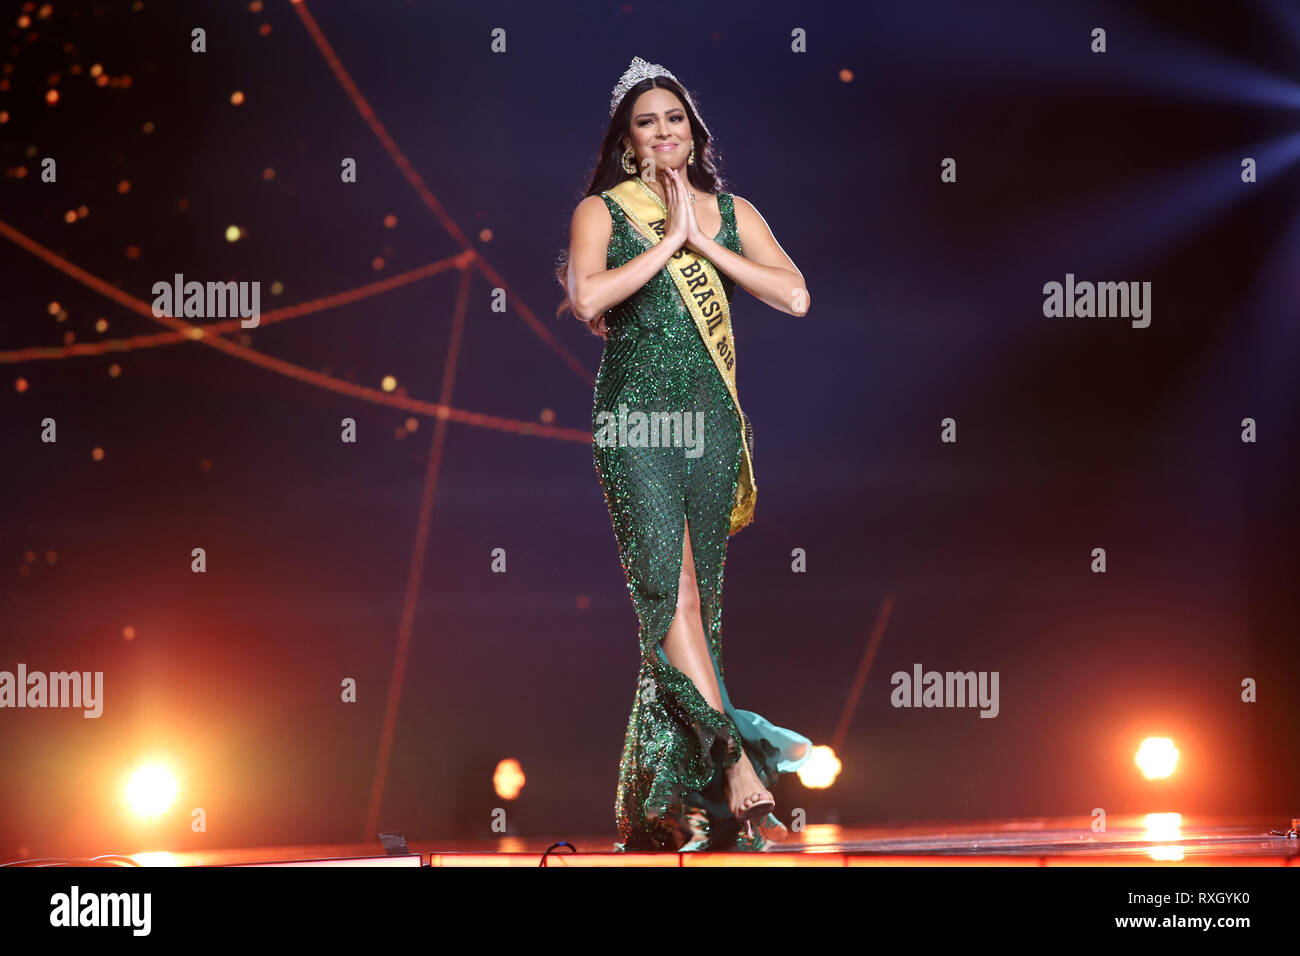 Sao Paulo, Brazil. 9th March 2019. Mayra Dias winner 2018 Be Emotion during contest Miss Brazil Be Emotion in the exhibition center São Paulo Expo in the south region of the city of São Paulo, 09. Credit: William Volcov/ZUMA Wire/Alamy Live News - Stock Image